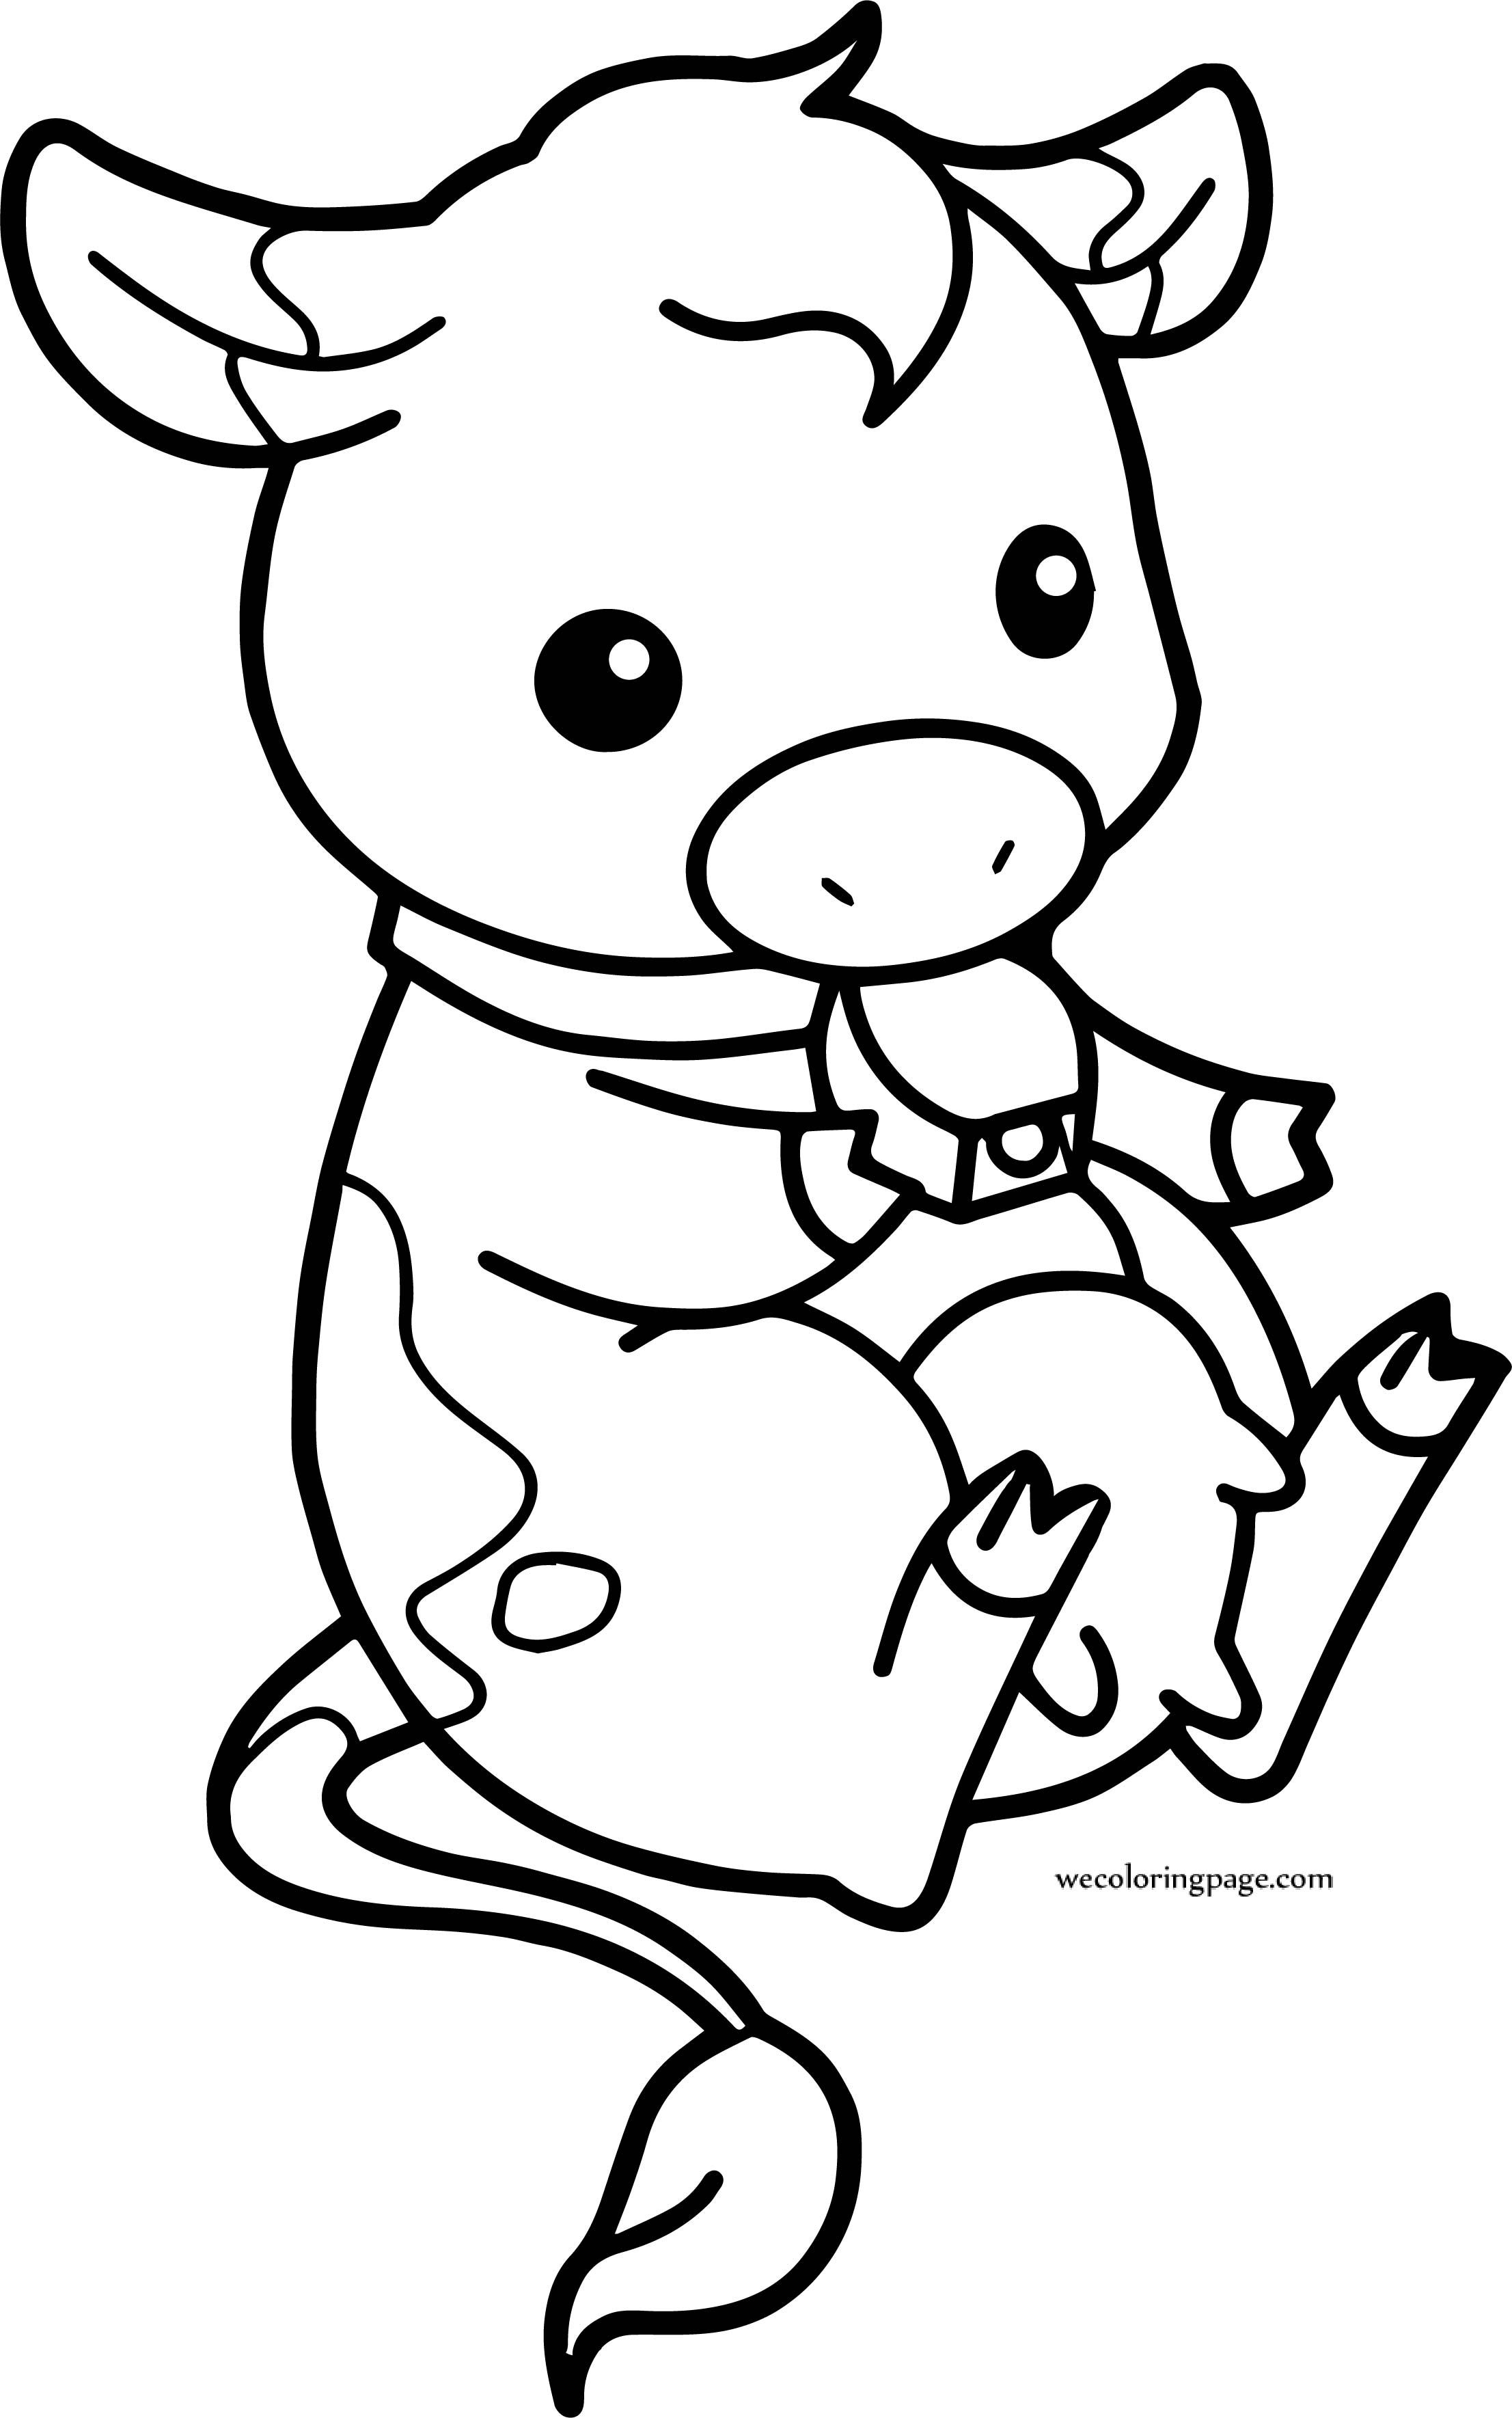 Pin By Wecoloringpage Coloring Pages On Wecoloringpage Cow Coloring Pages Baby Coloring Pages Baby Cows